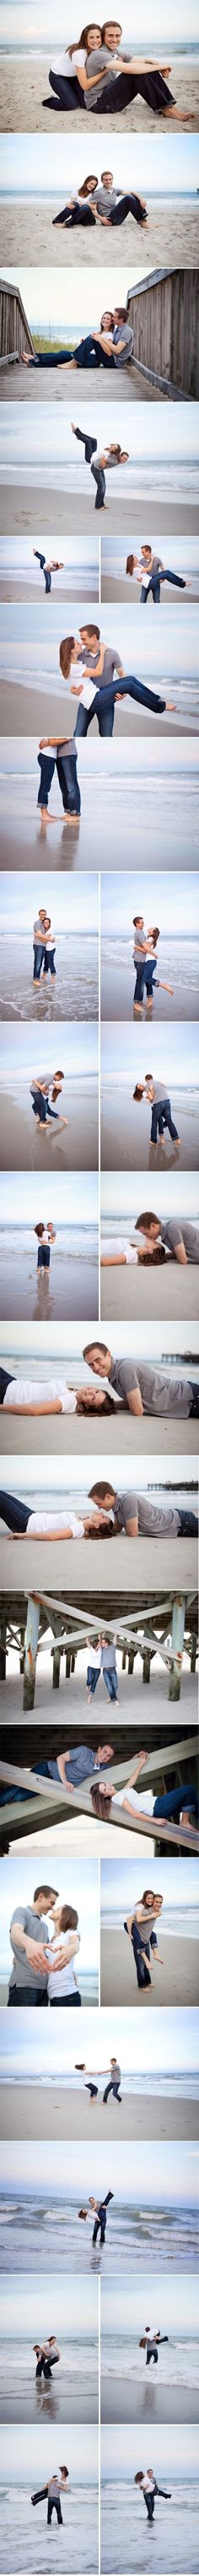 Cute beach couple/engagement photos! by Paola114